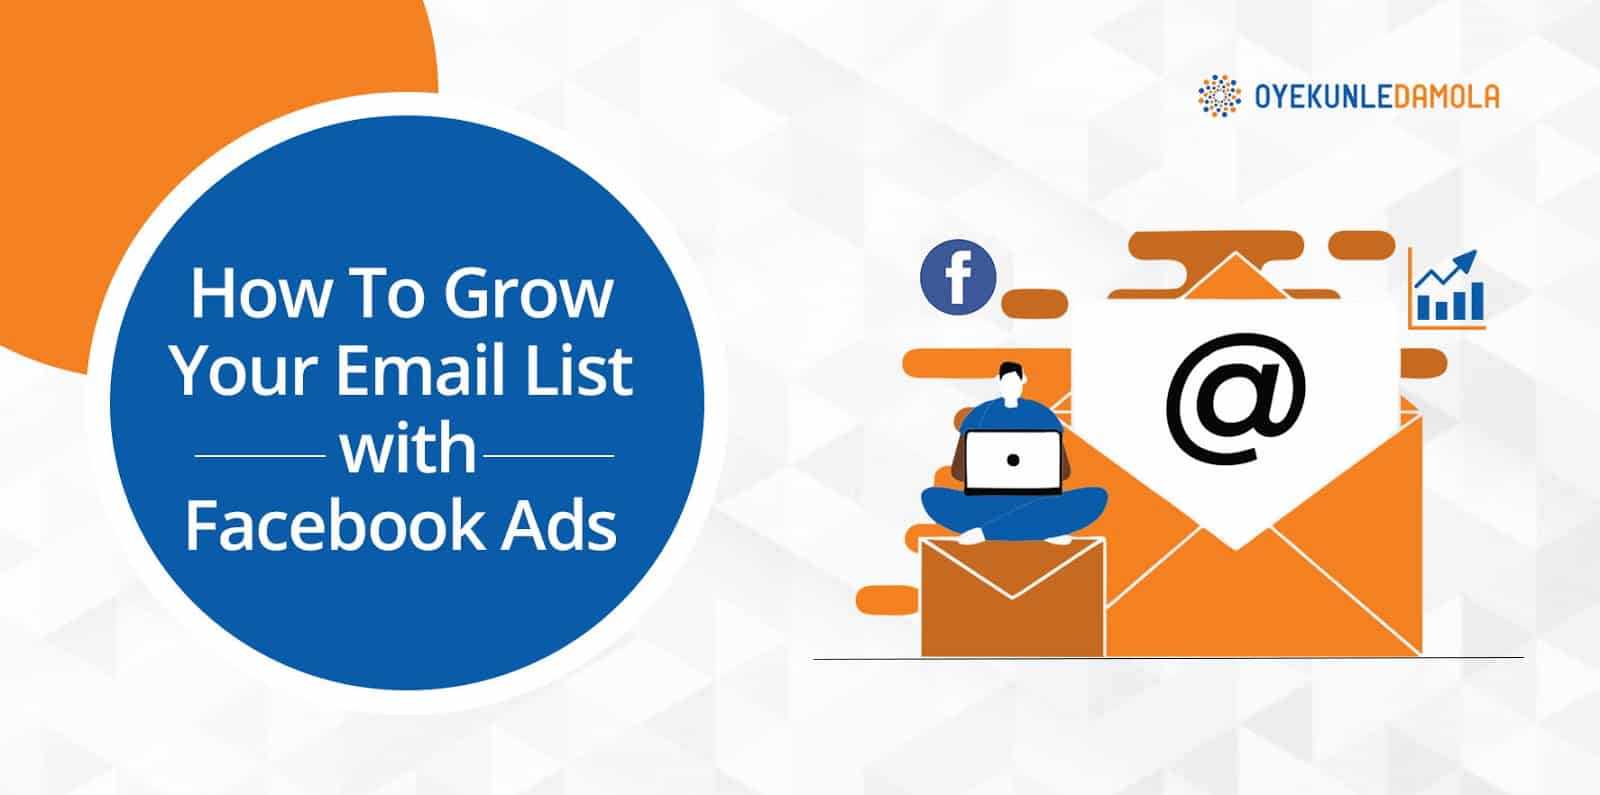 how to grow your email list with Facebook ads